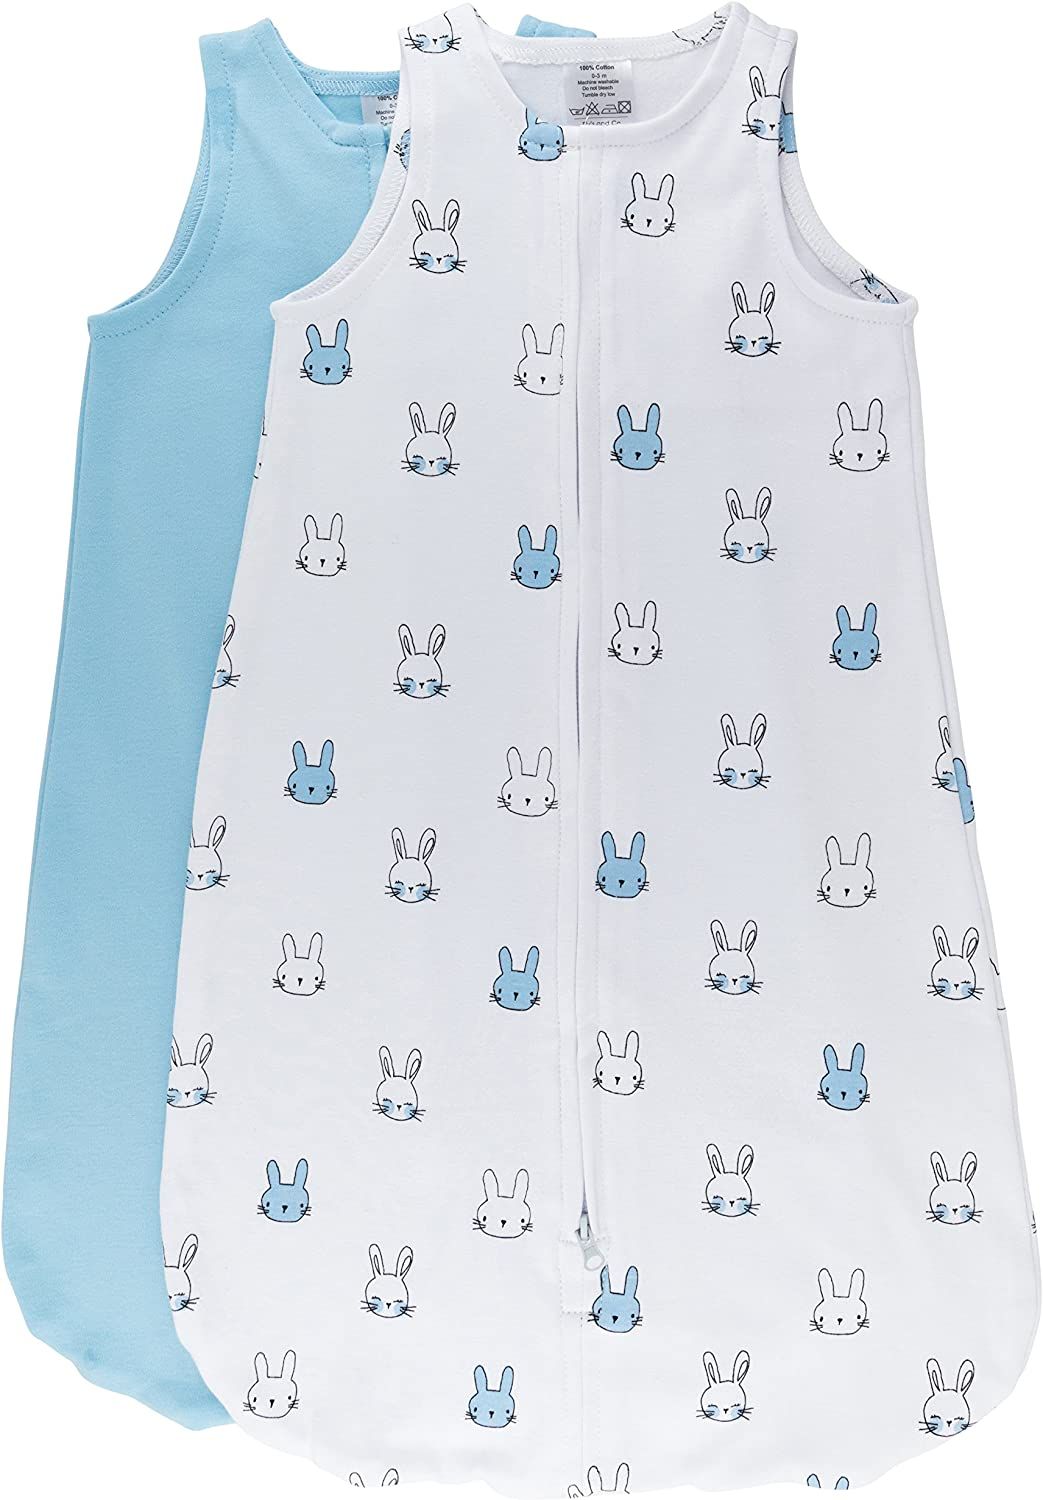 100% Cotton Wearable Blanket Baby Sleep Bag Blue Bunnies 2 Pack (6-12 Months) 81abLDMyQyL